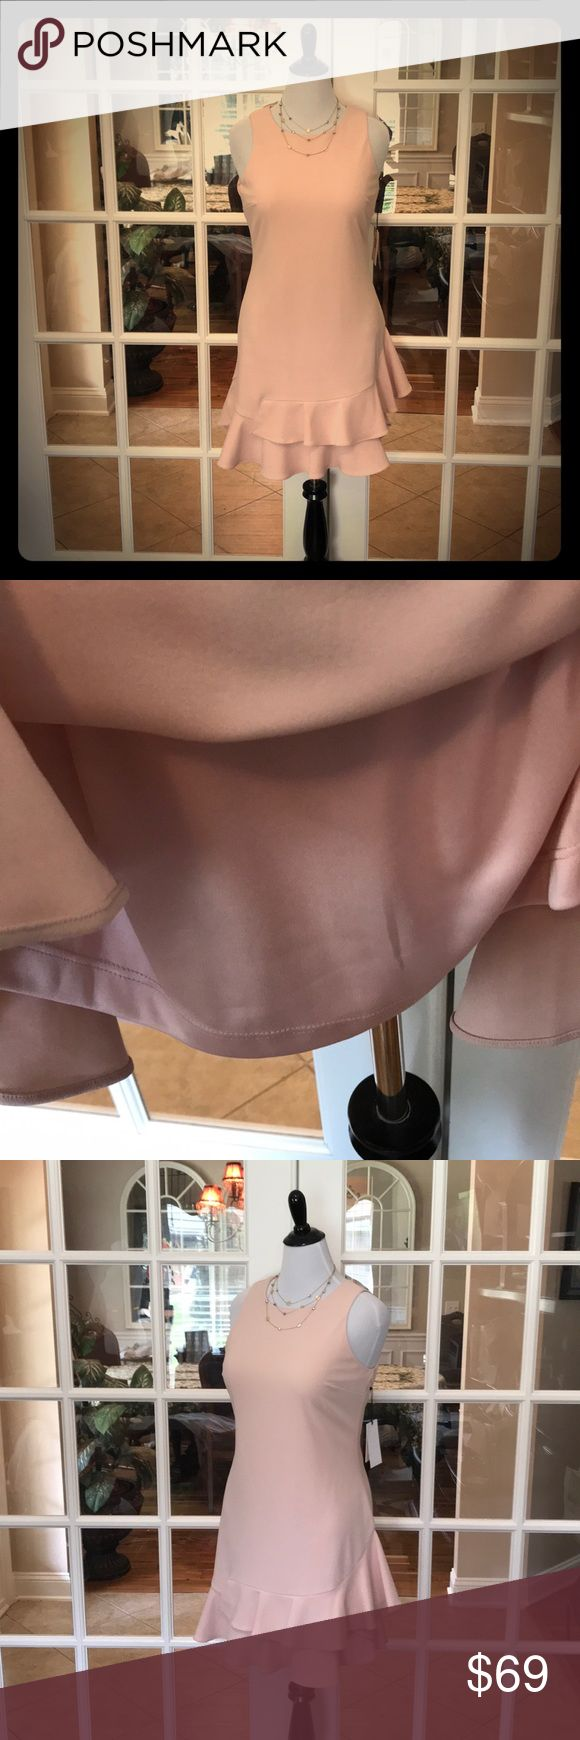 🆕 Ivanka Trump Blush Dress JUST IN‼️- This Ivanka Trump dress is a soft blush color.  The design is simple, yet very classy.  Dress is fully lined and has great 4-way stretch.   Shell 94% Polyester, 6% Spandex.  Lining is 100% Polyester. 💞 Ivanka Trump Dresses